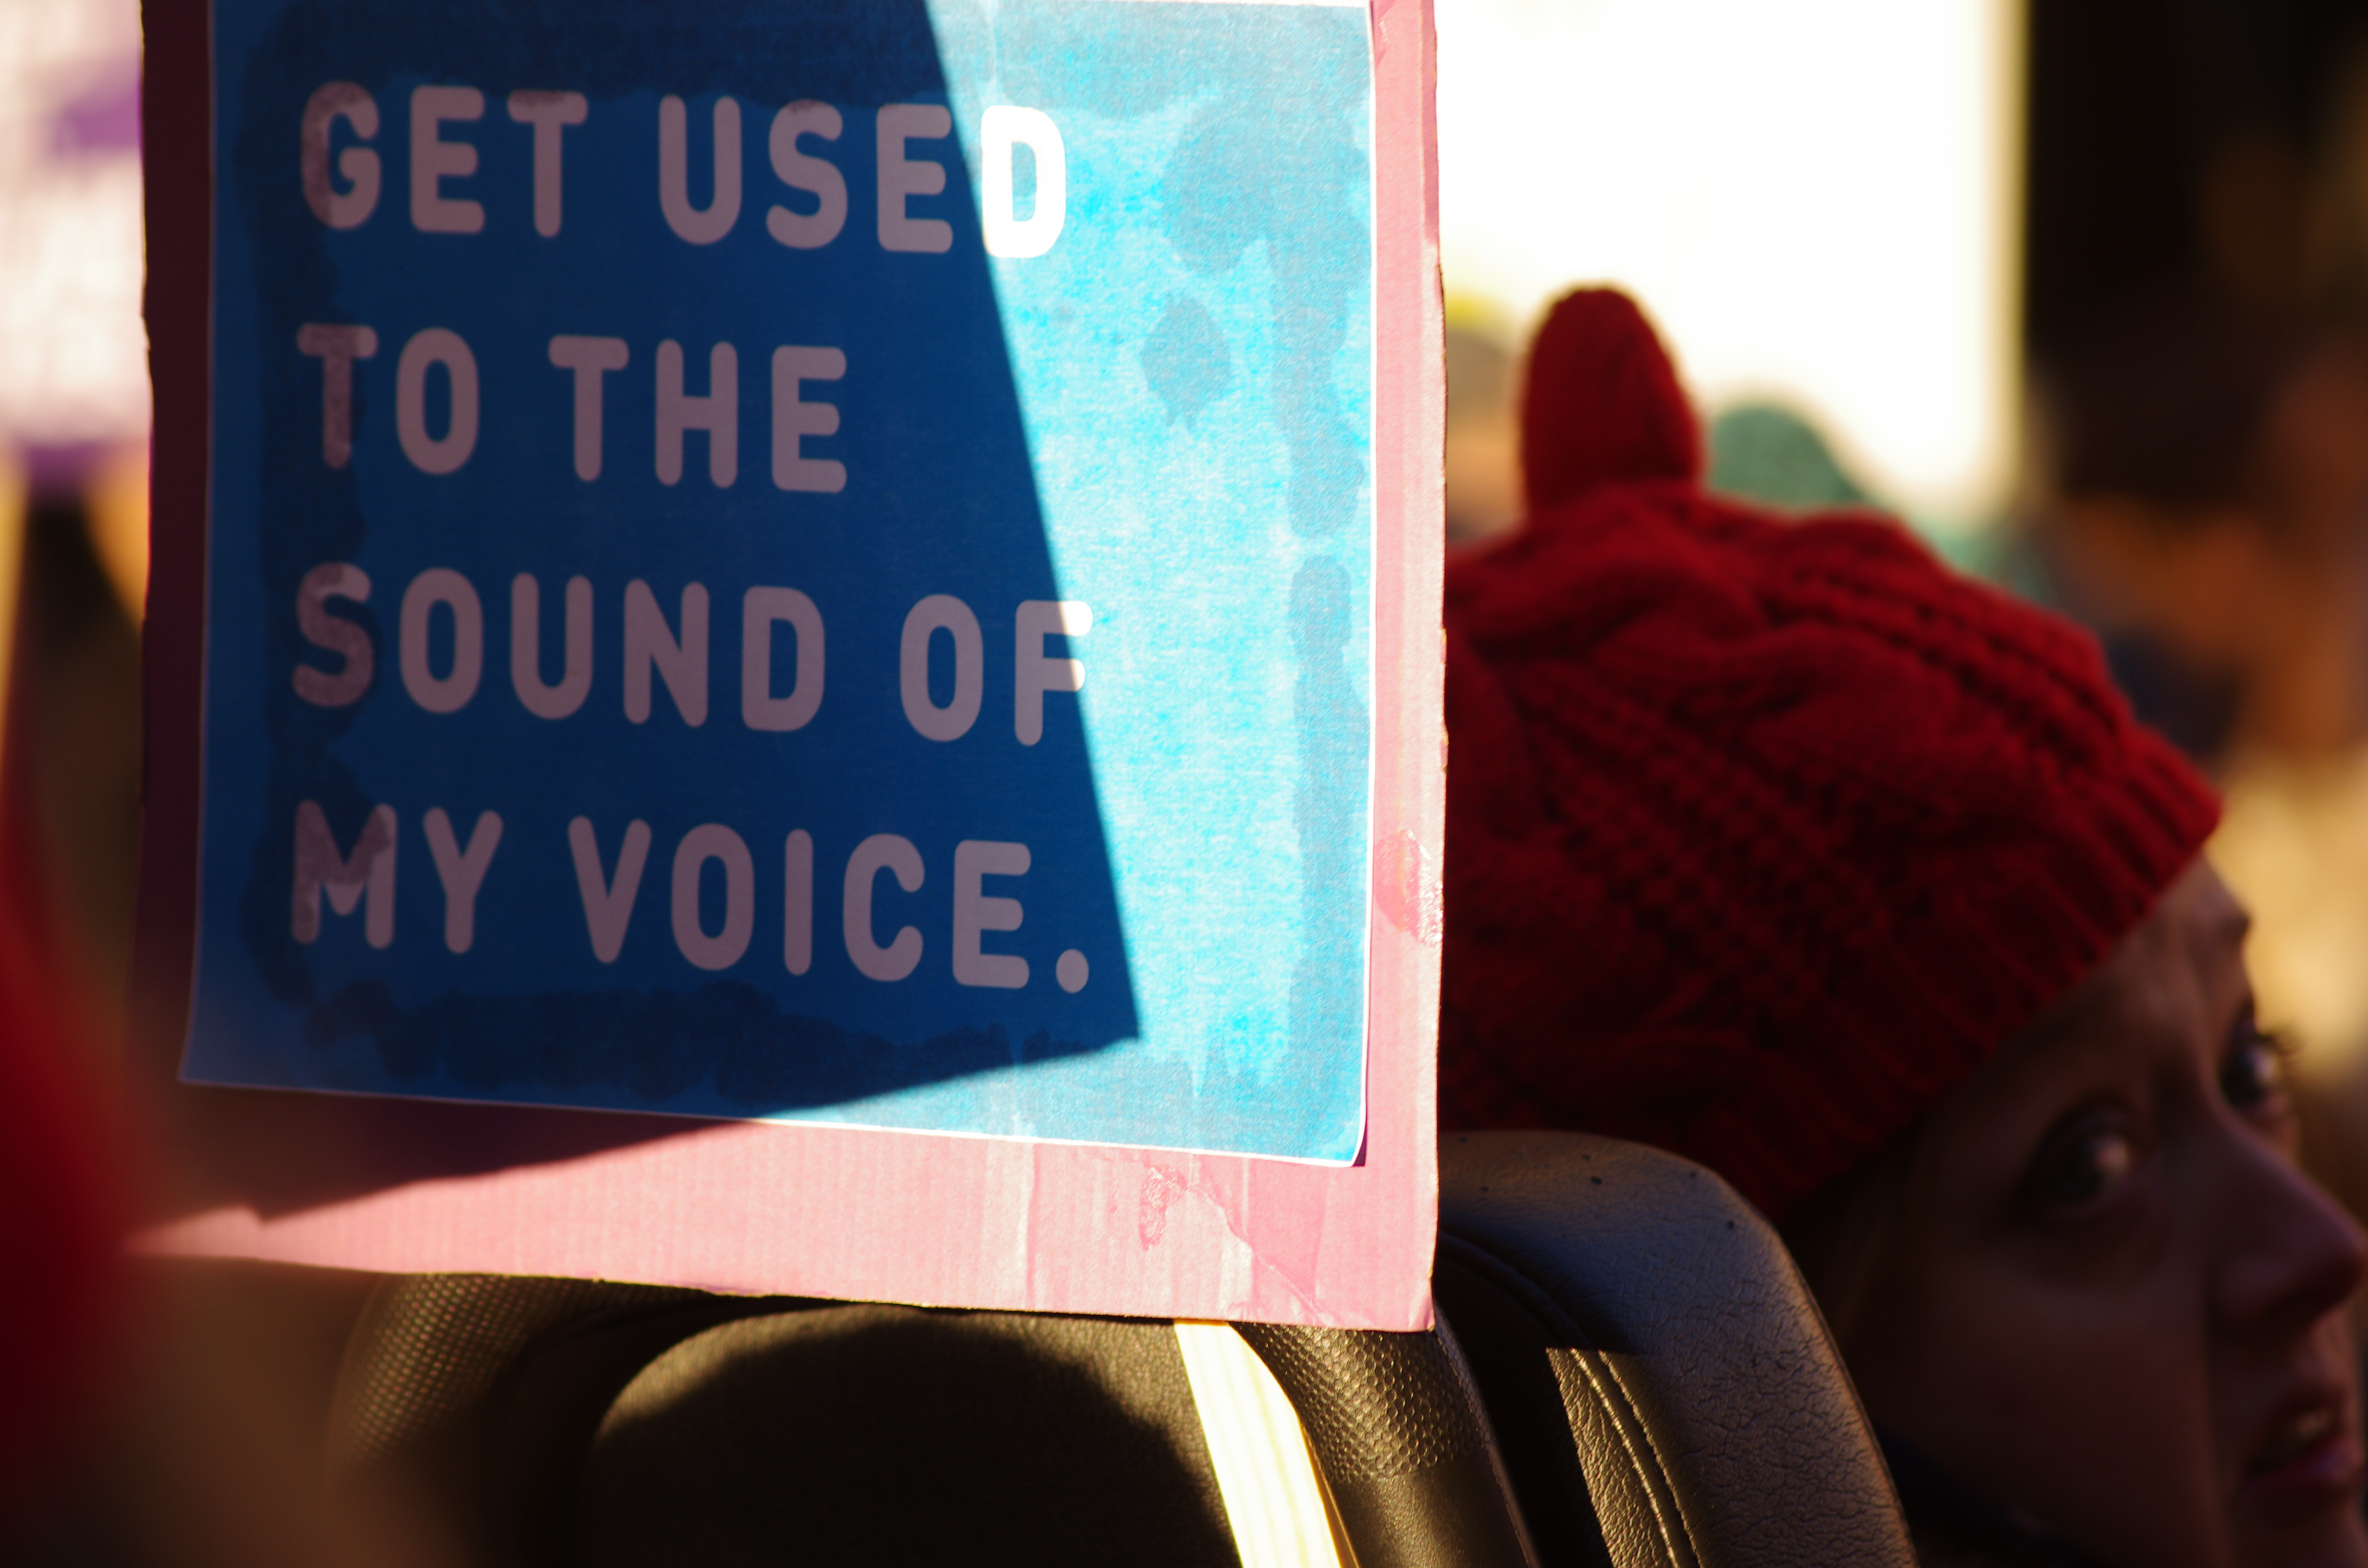 get-used-to-the-sound-of-my-voice